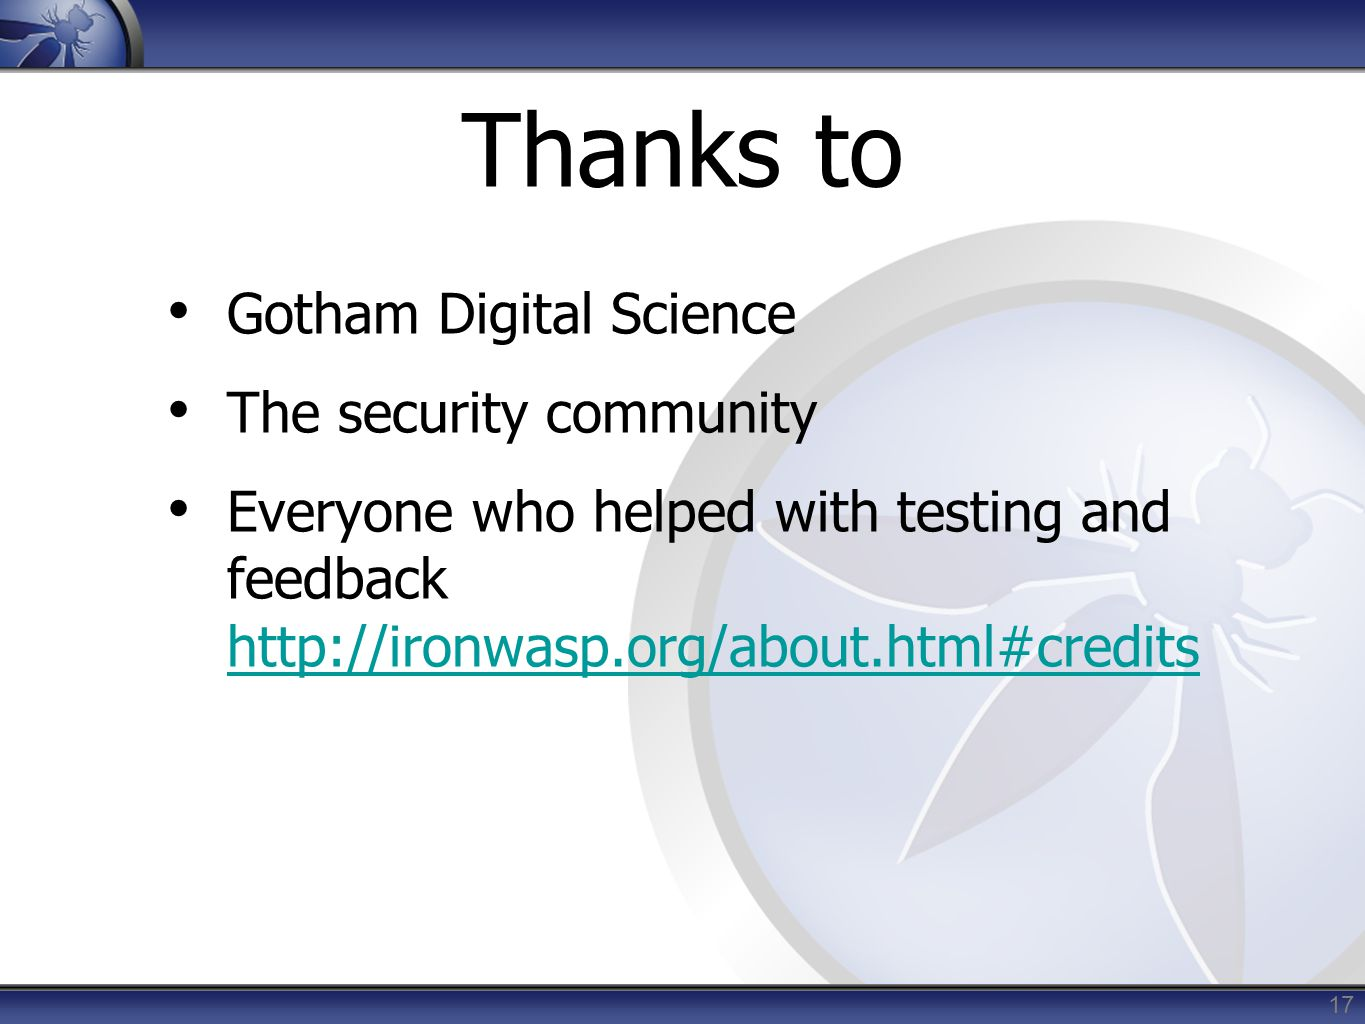 Thanks to Gotham Digital Science The security community Everyone who helped with testing and feedback http://ironwasp.org/about.html#credits http://ironwasp.org/about.html#credits 17